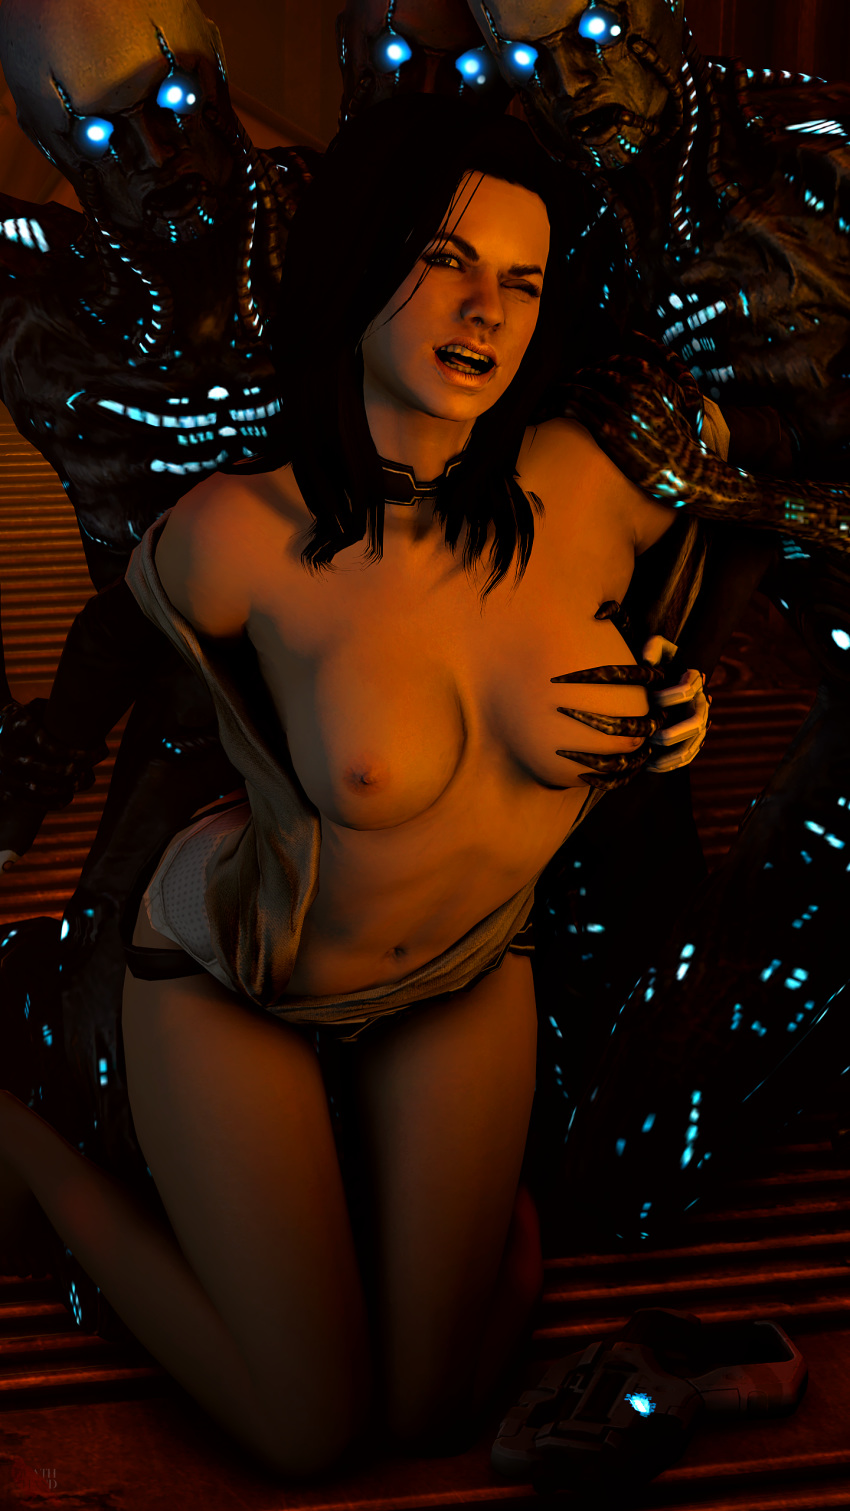 3 mass effect shower traynor Avatar the last airbender nude